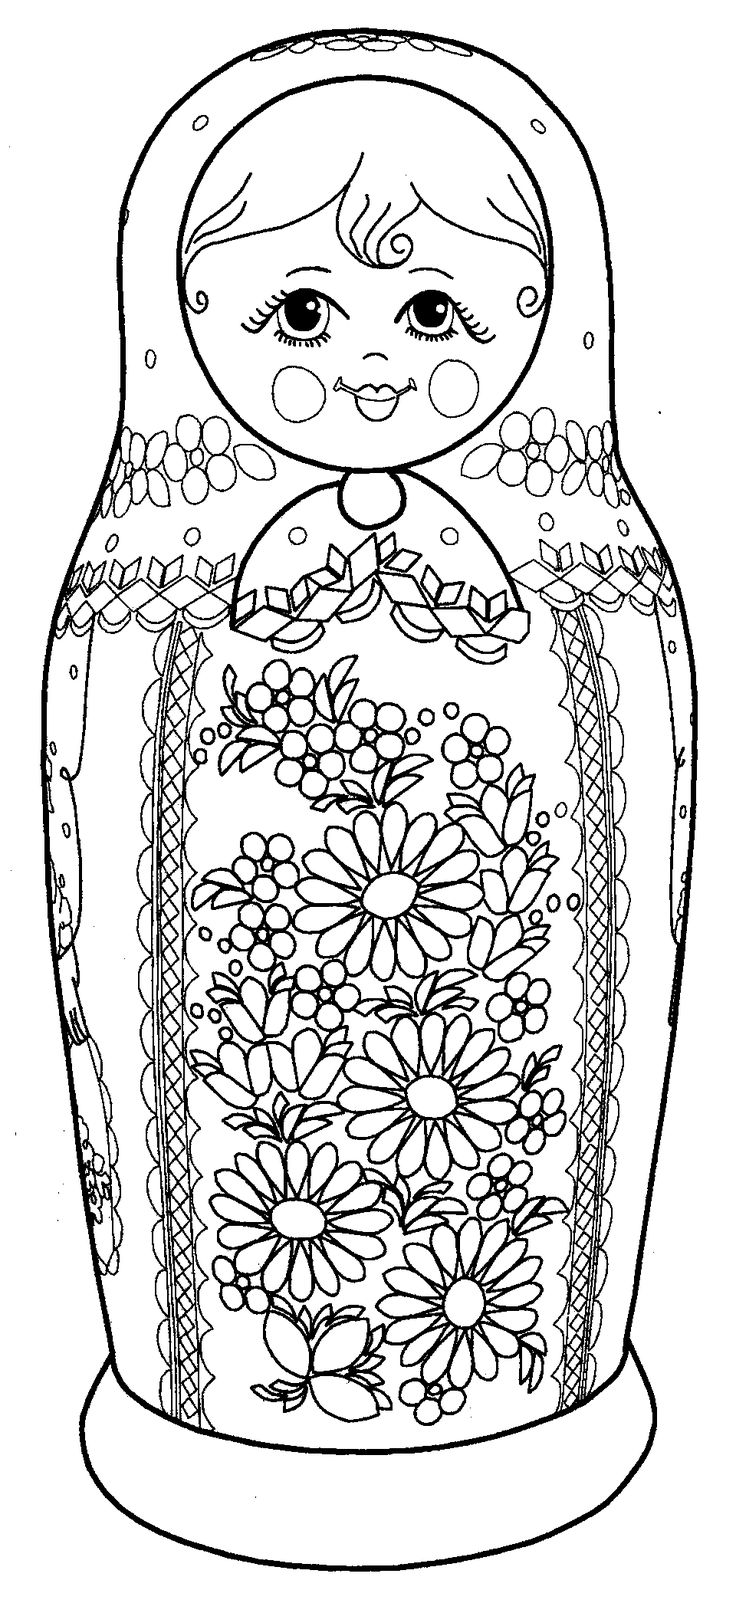 762 best coloring books images on pinterest coloring books